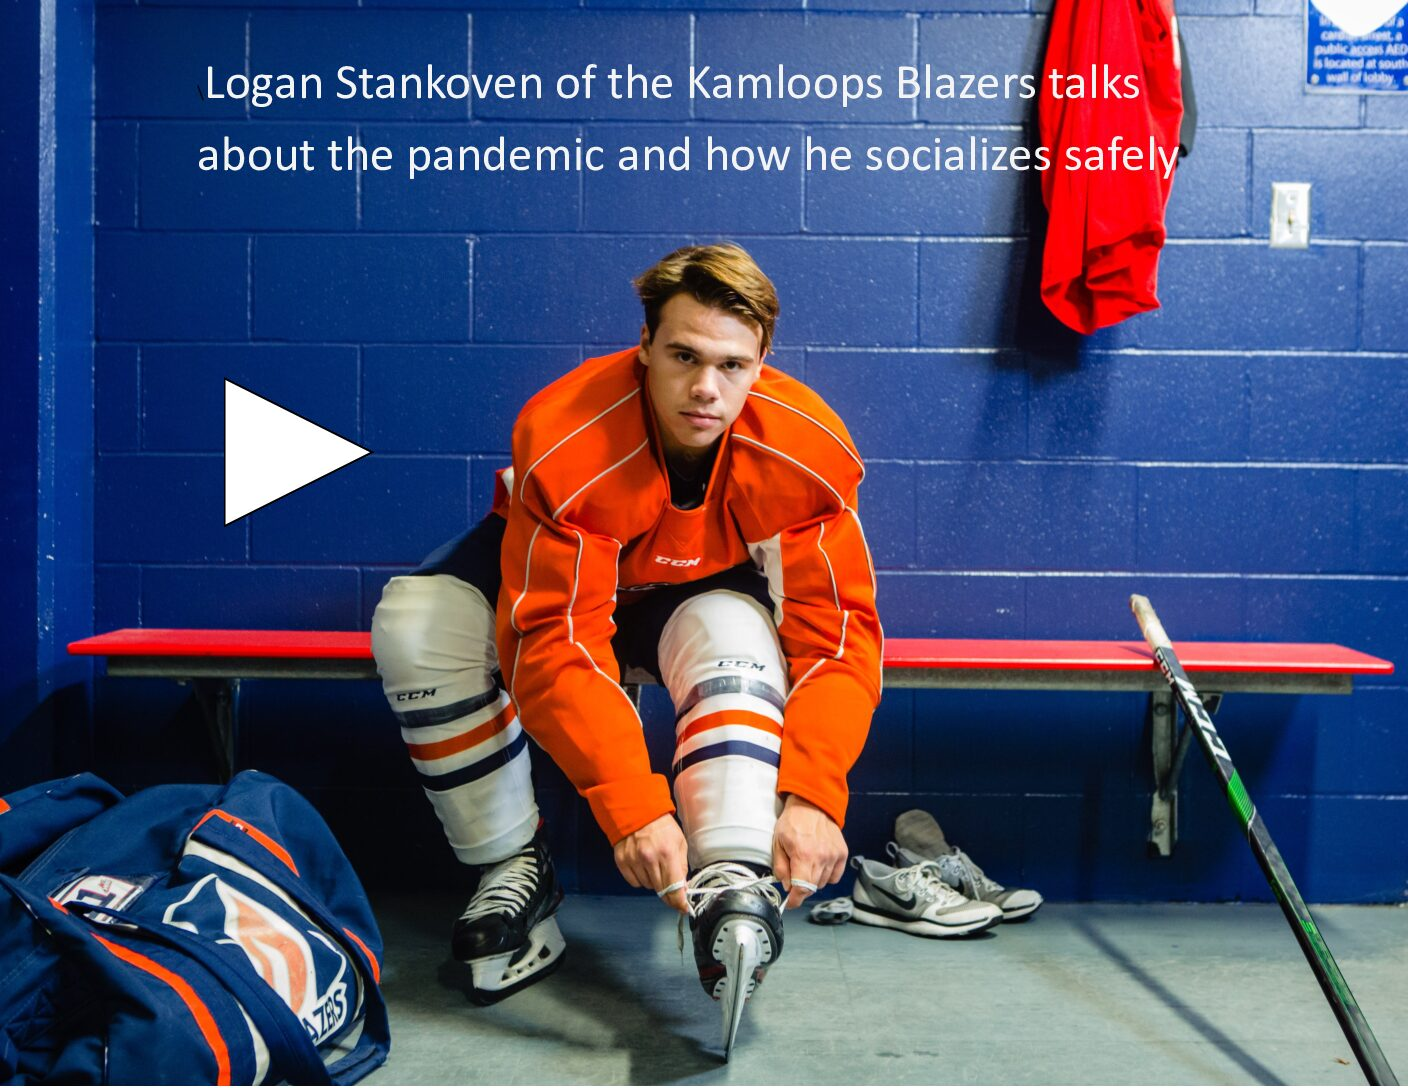 Logan Stankoven of Kamloops Blazers and COVID-19